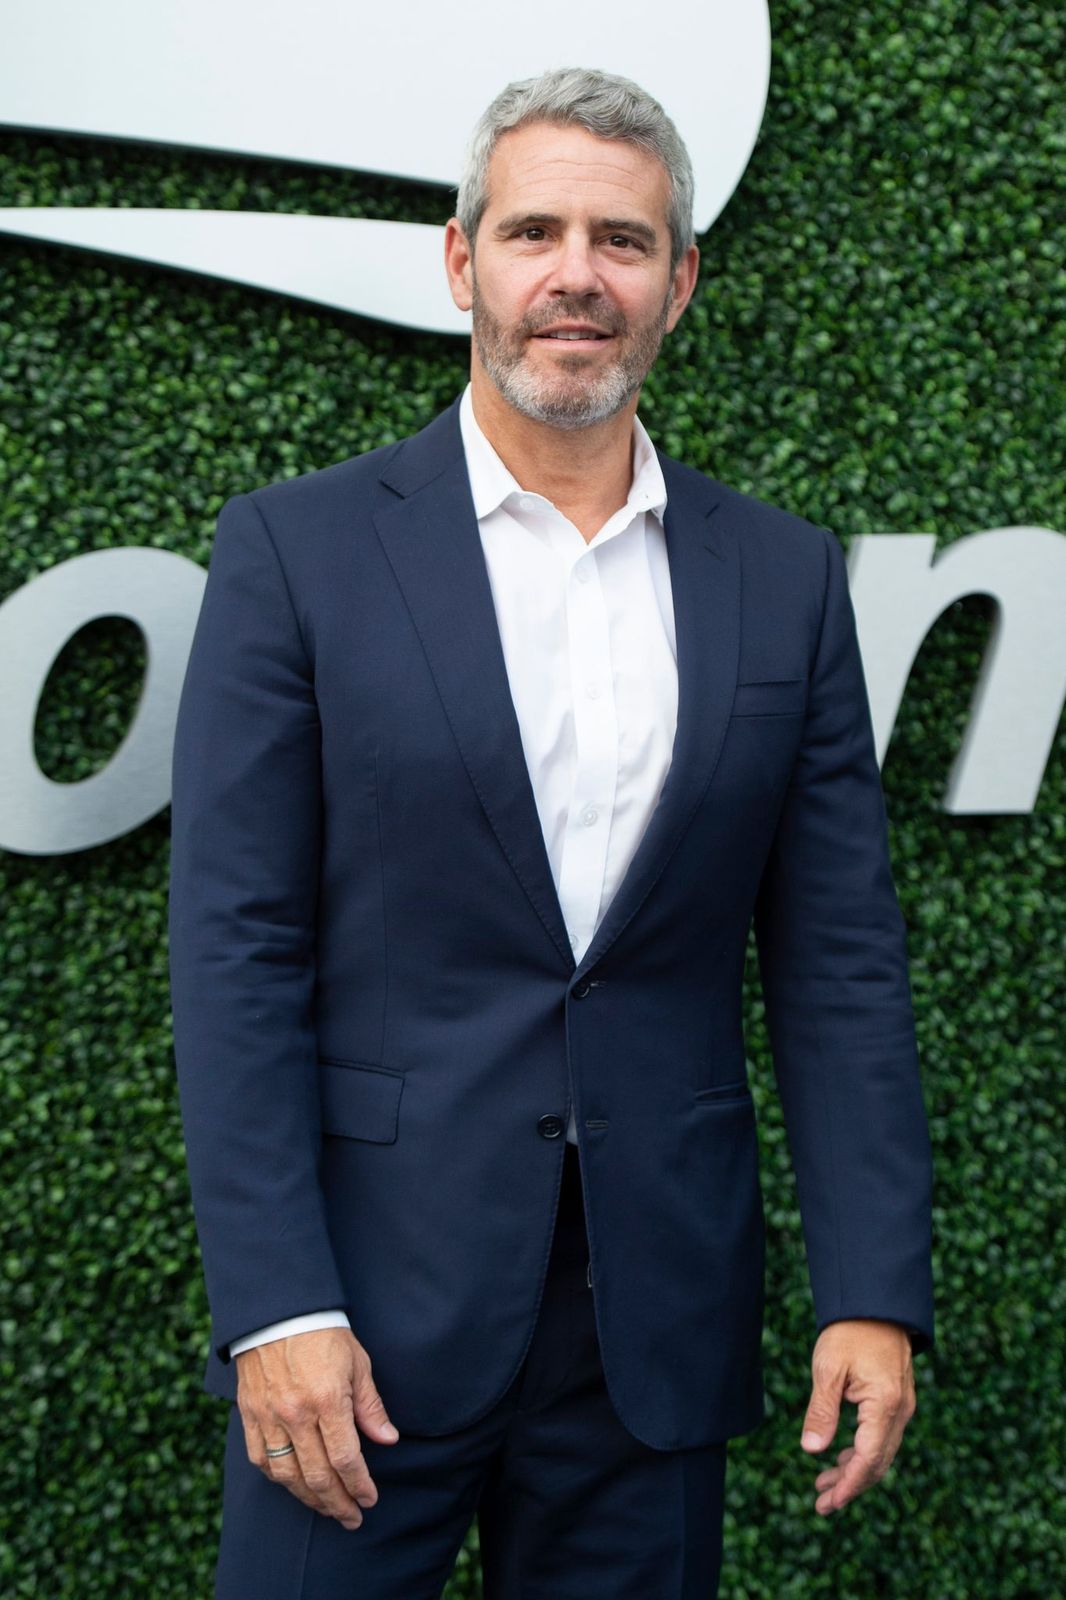 Andy Cohen at the US Open on September 5, 2019, in New York City   Photo: Adrian Edwards/GC Images/Getty images